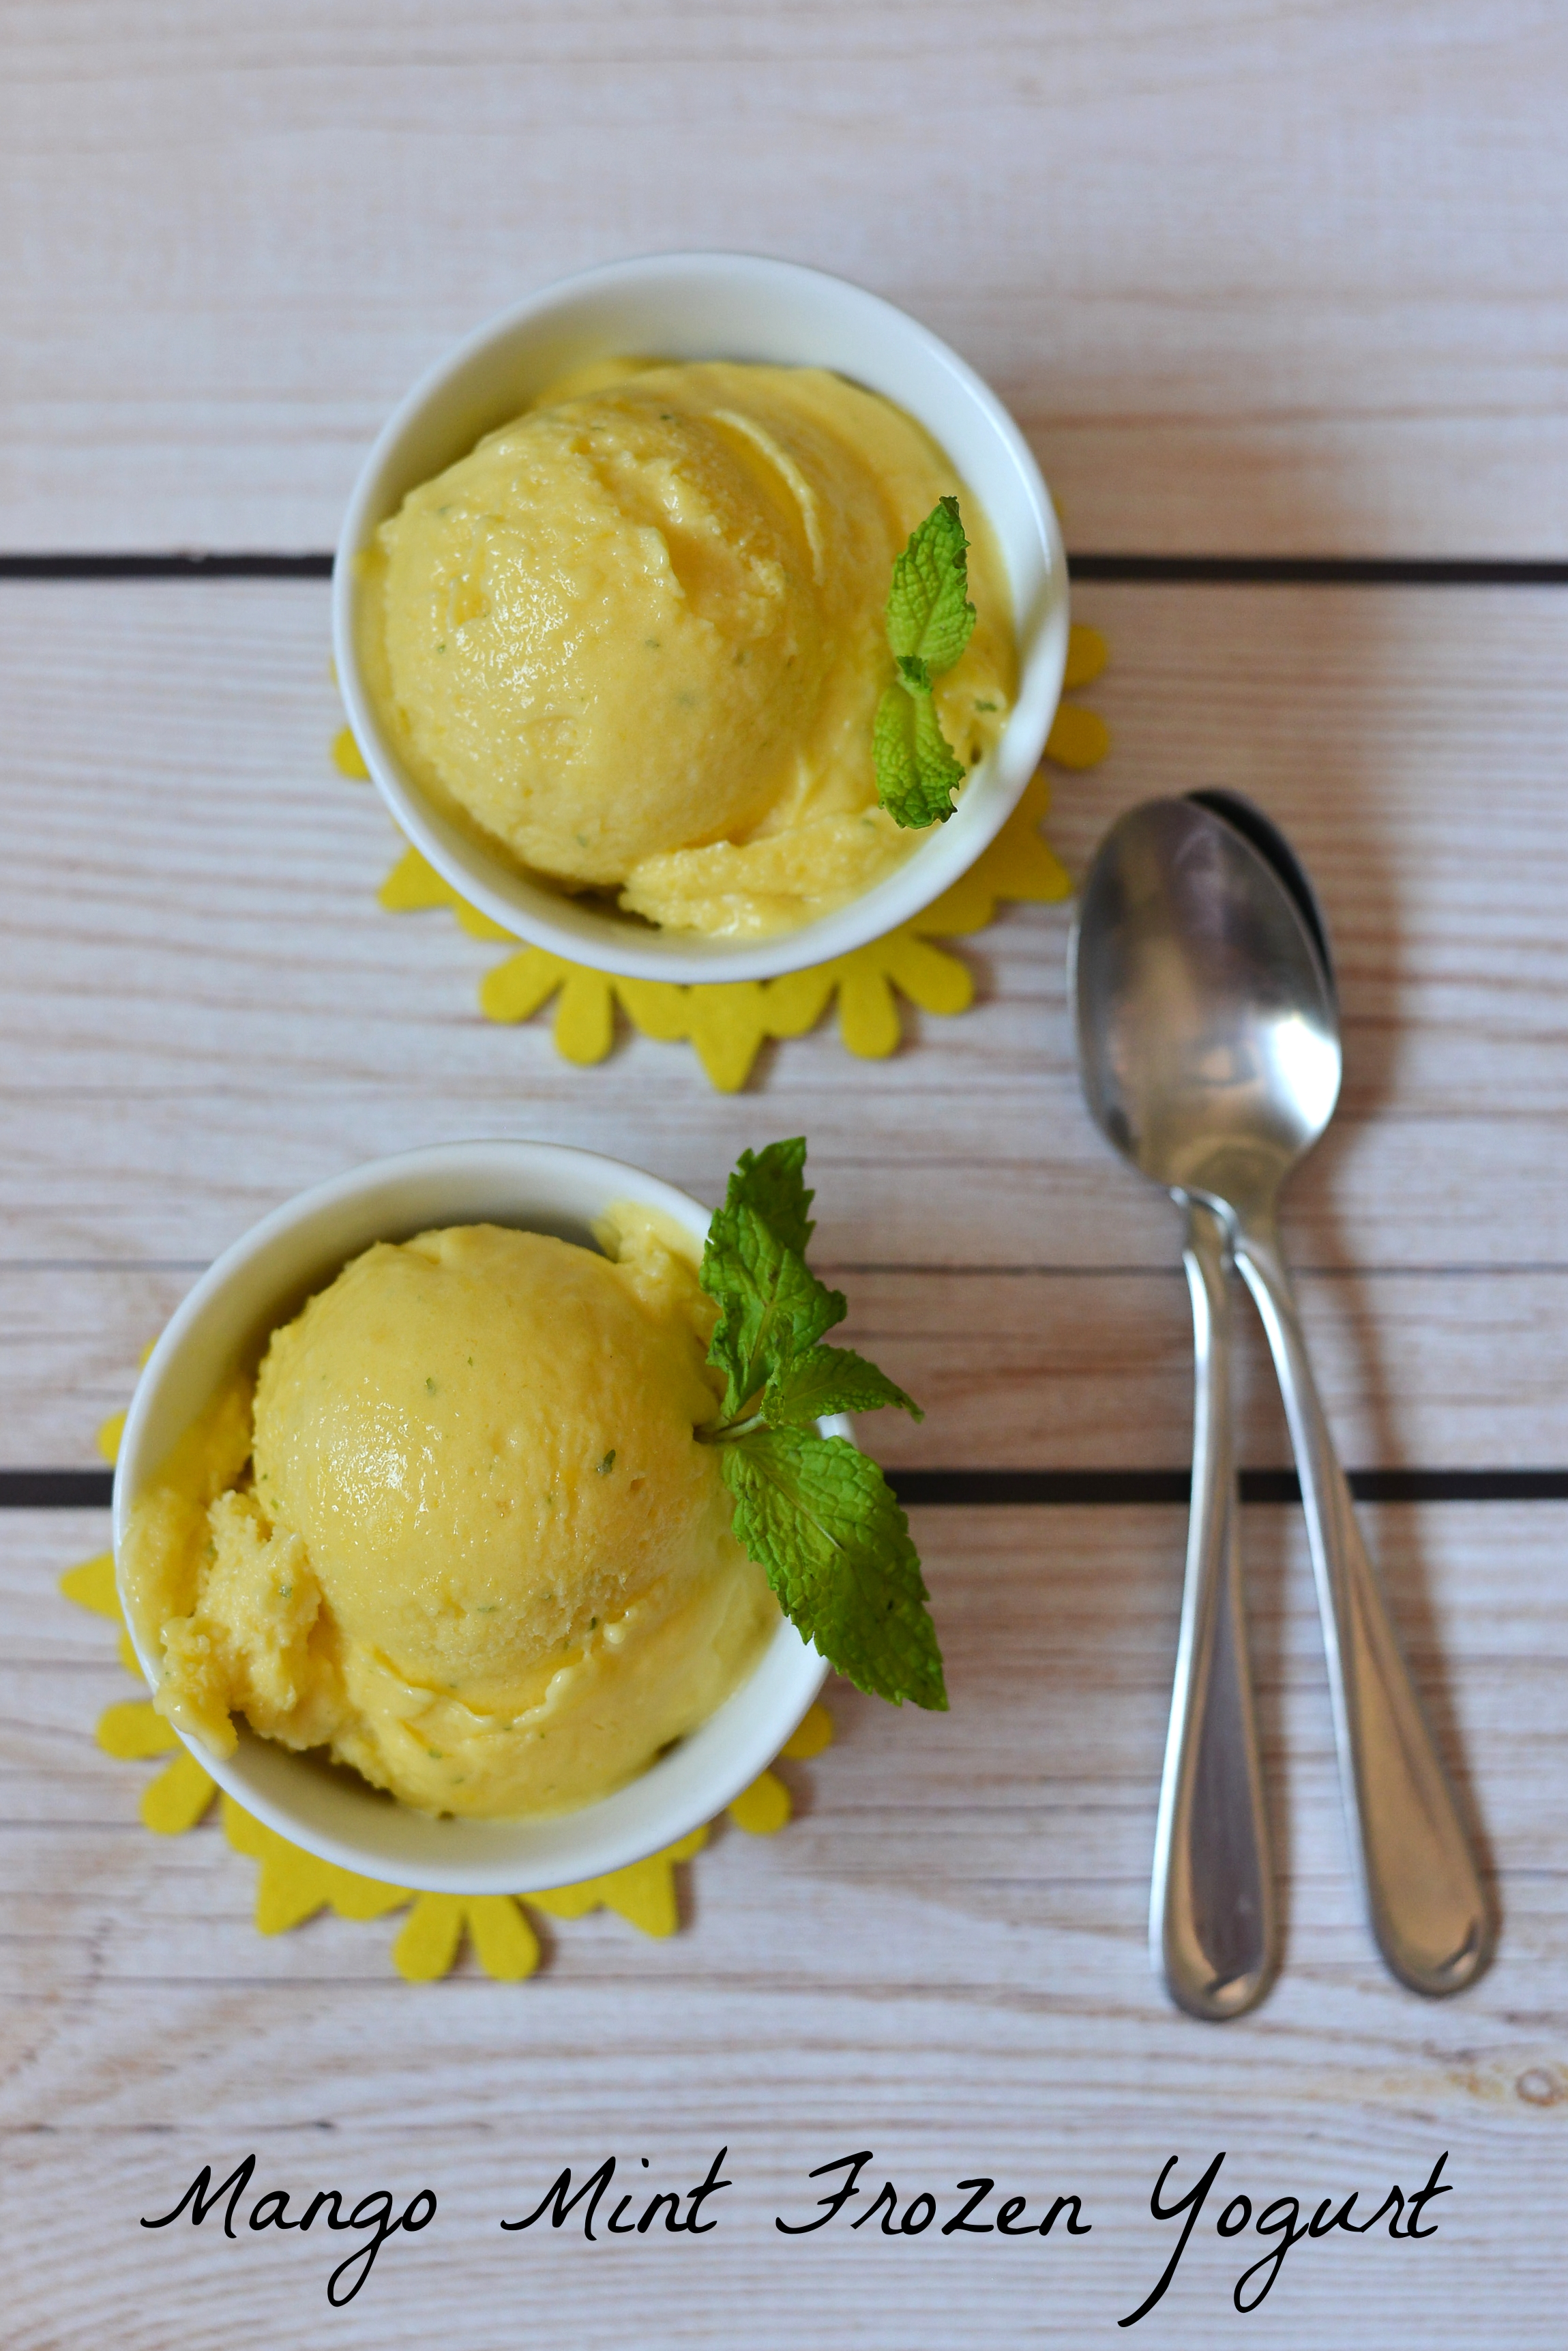 Instant frozen yogurt without the hassle of an ice cream maker!